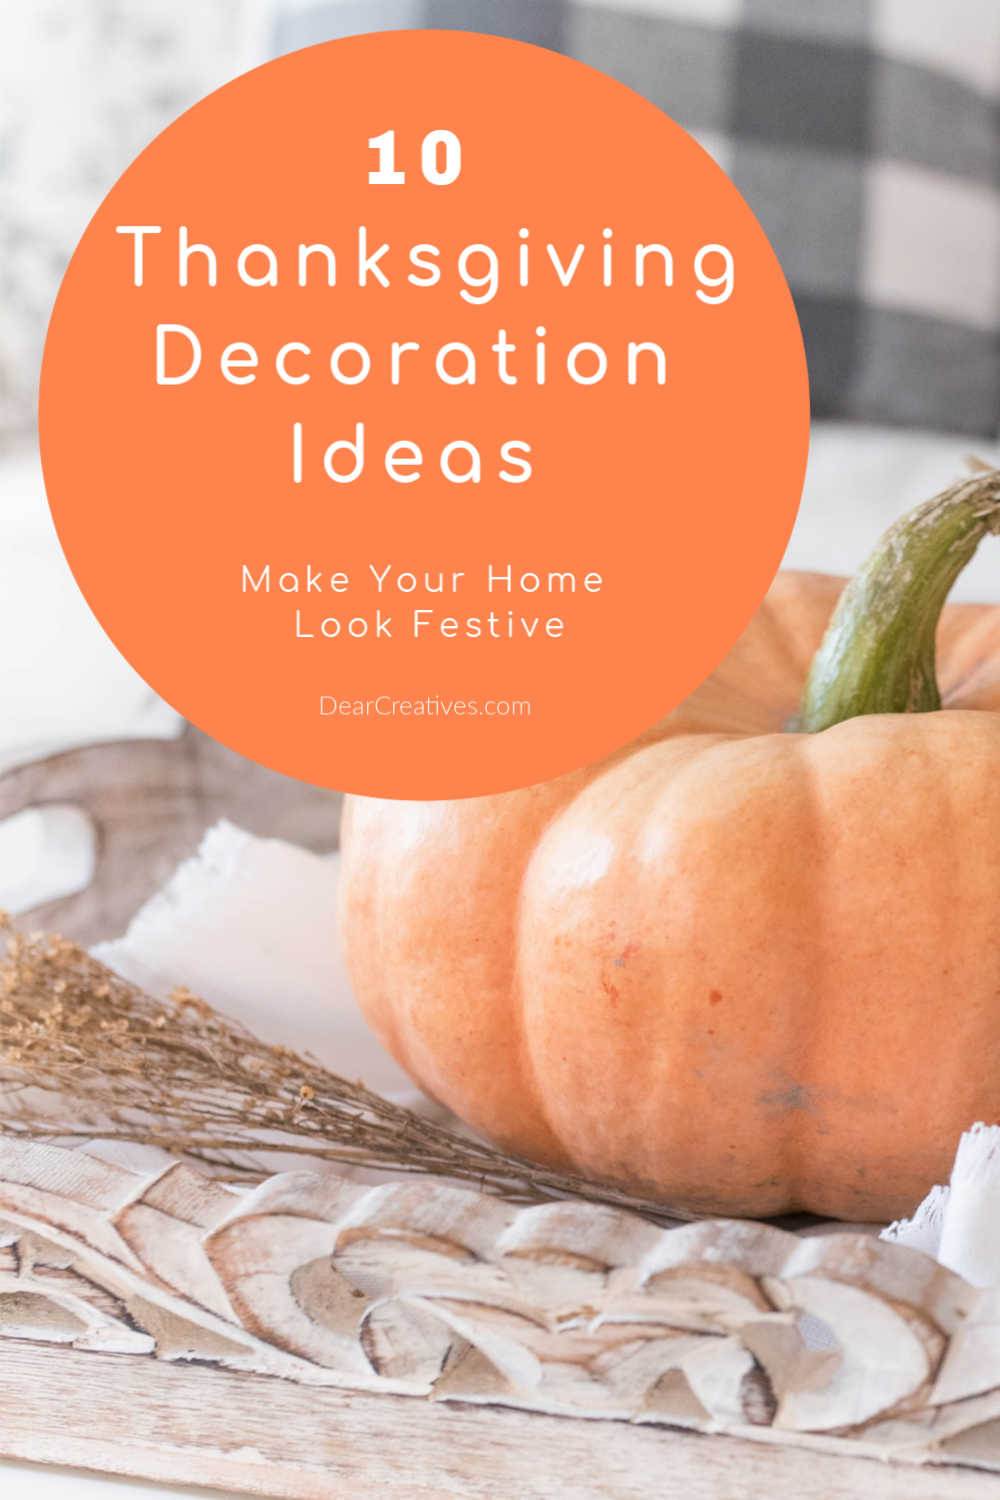 10 Thanksgiving Decoration Ideas That Are Easy!